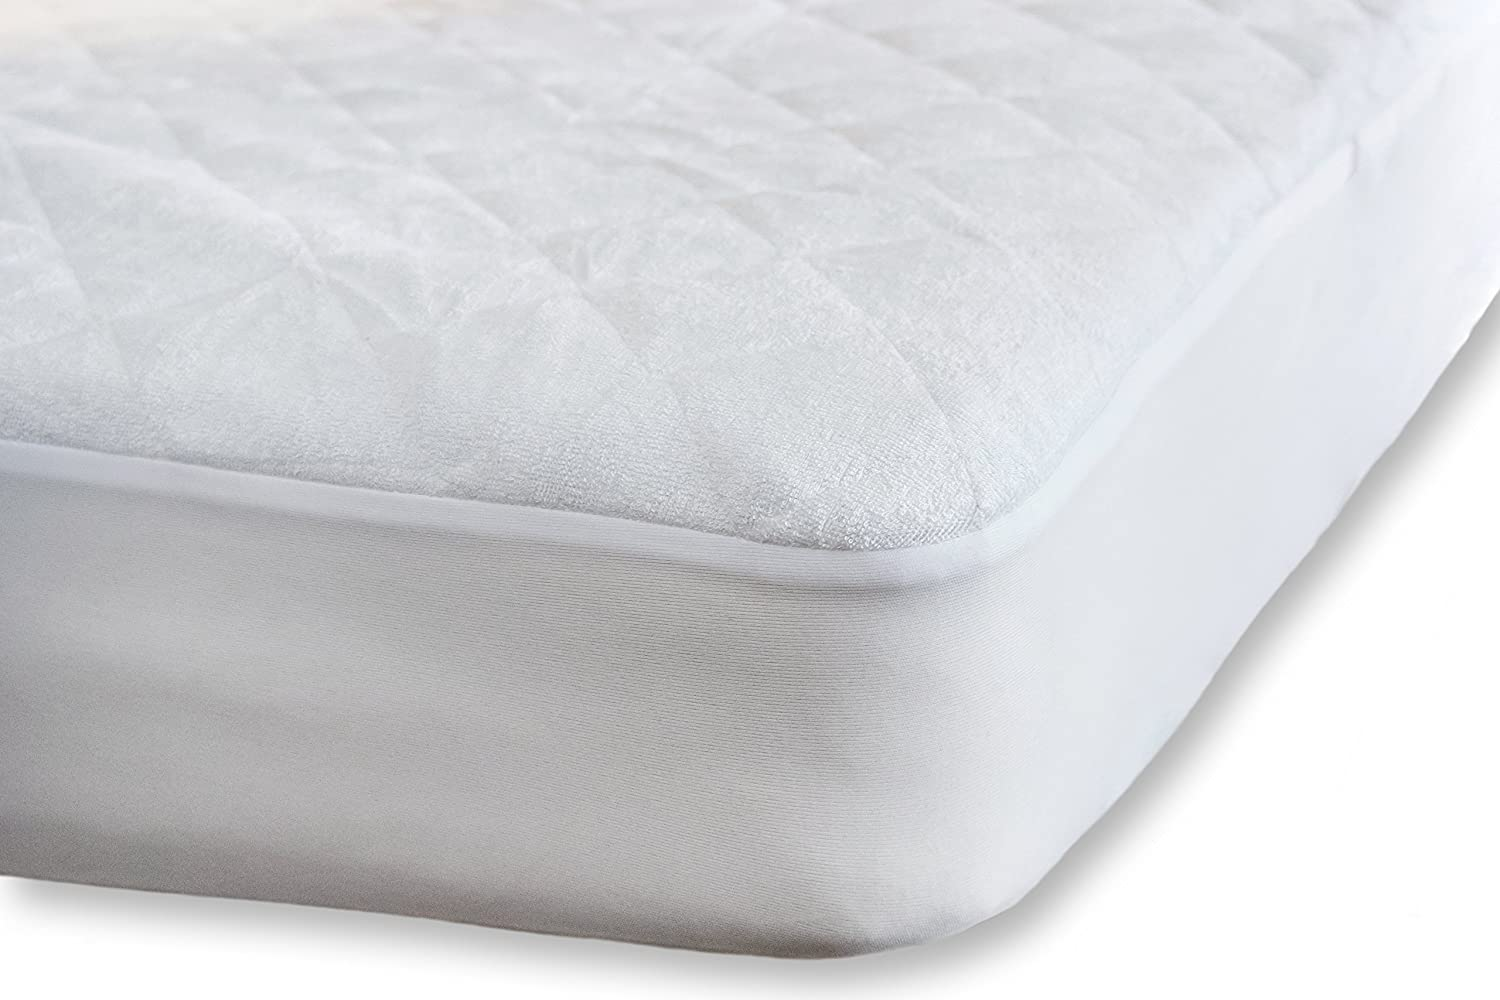 Very Helpful Crib Mattress Pad Amazon.com : Waterproof Fitted Crib Mattress Protector - Washable Organic  Bamboo Terry Crib Mattress Pad - Noiseless, Breathable u0026 Hypoallergenic Crib  ...